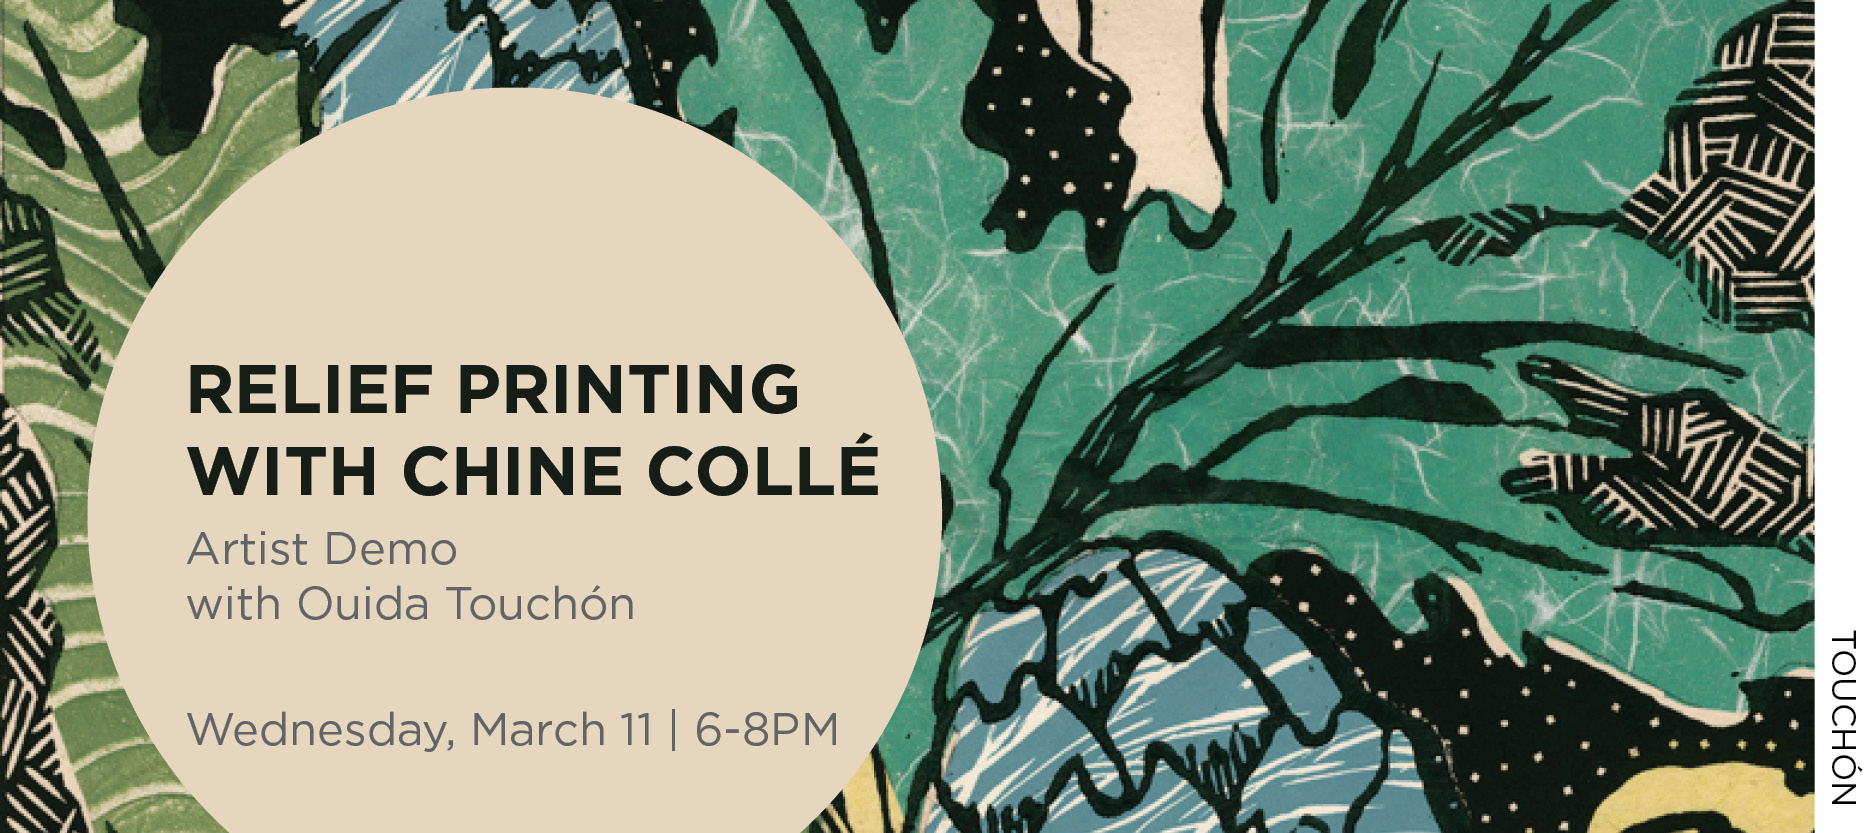 Relief printing with Chine Colle, artist demo with Ouida Touchon, Wednesday, March 11 from 6 to 8 PM